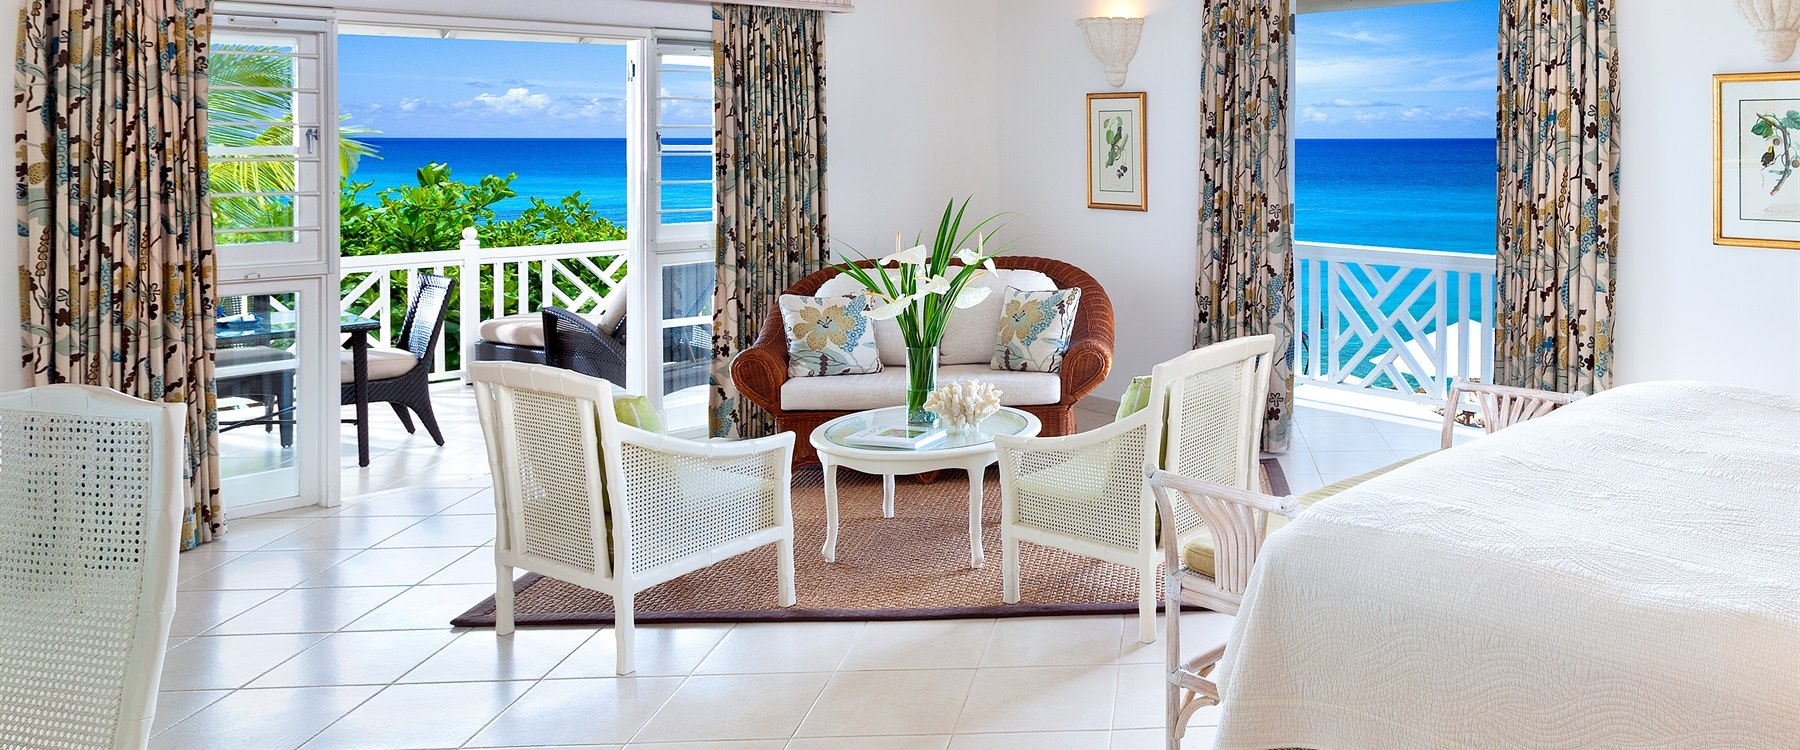 Luxury junior spa at coral reef club barbados